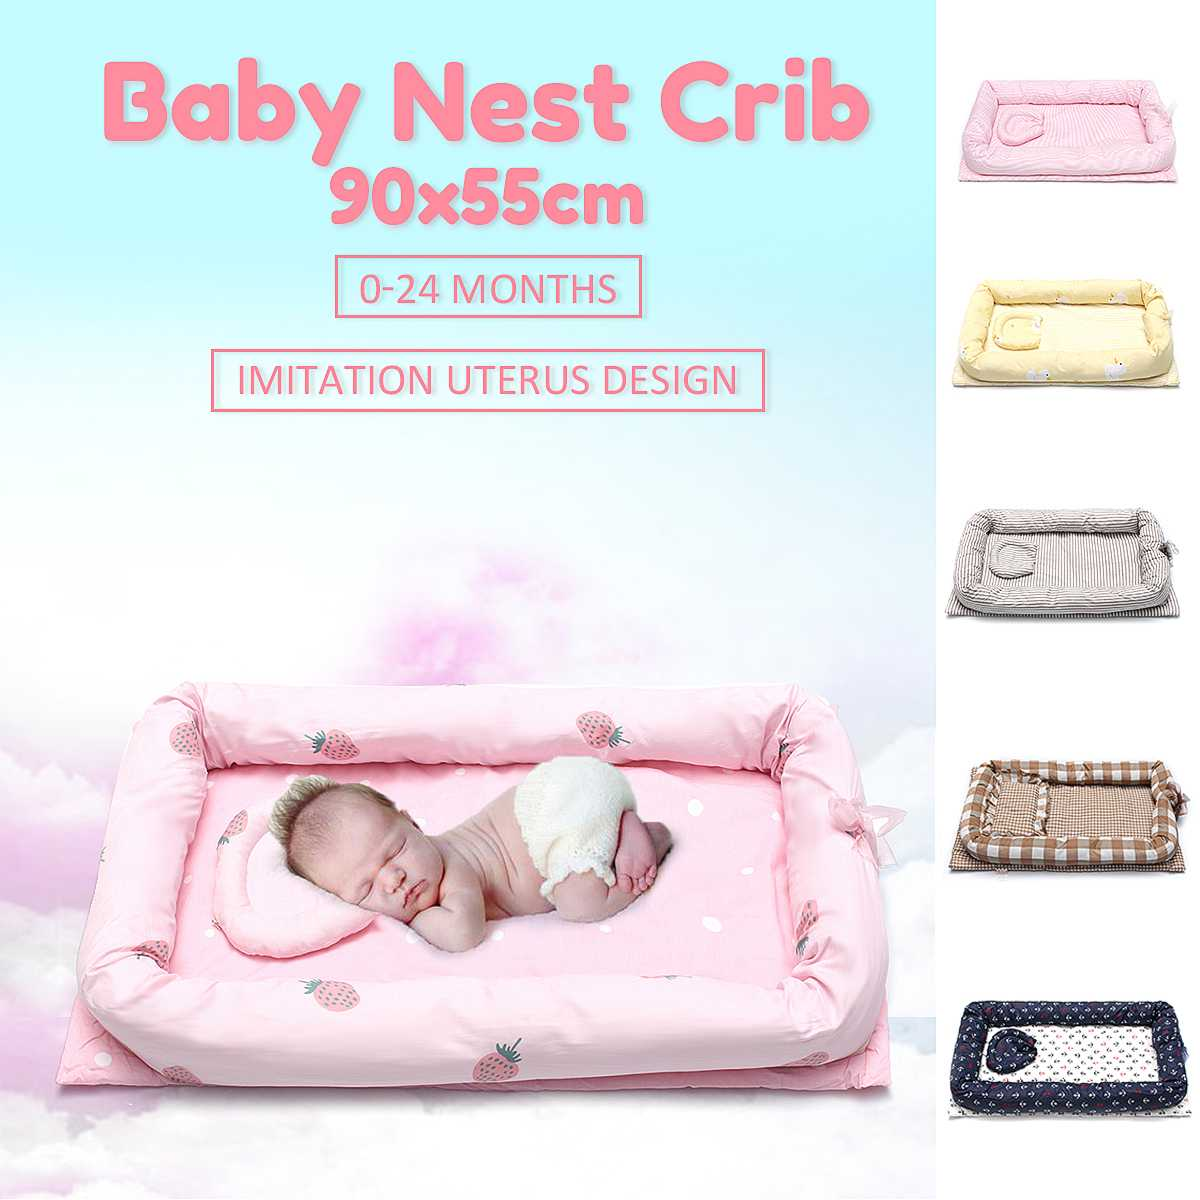 Multifunctional Baby Nest Crib with Pillow Infant Bag Portable Newborn Foldable Travel Bed with Bumper Cot Mattress 90x55x15cmMultifunctional Baby Nest Crib with Pillow Infant Bag Portable Newborn Foldable Travel Bed with Bumper Cot Mattress 90x55x15cm